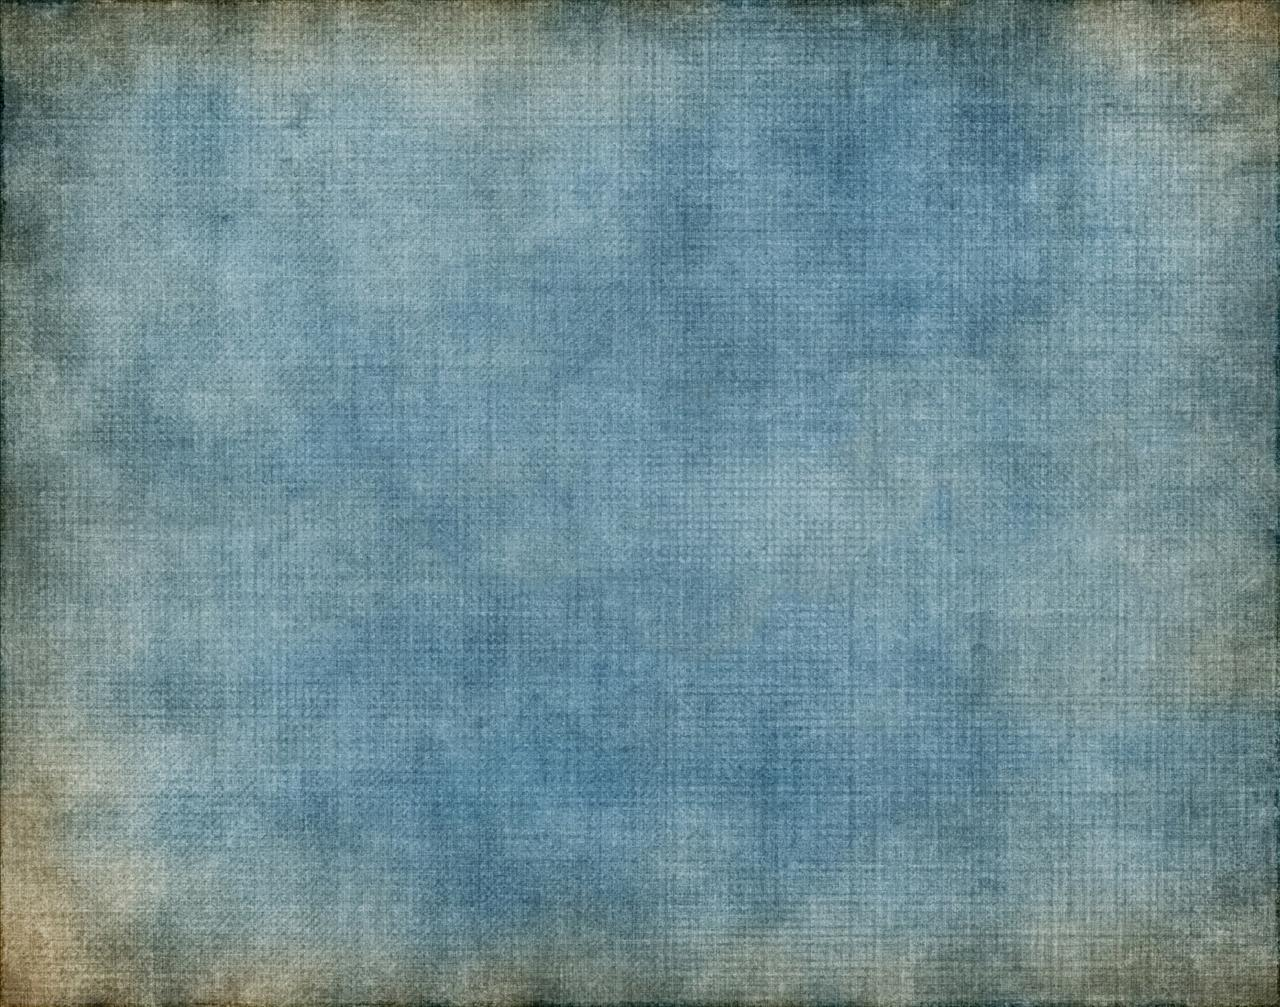 Vintage Blue Backgrounds